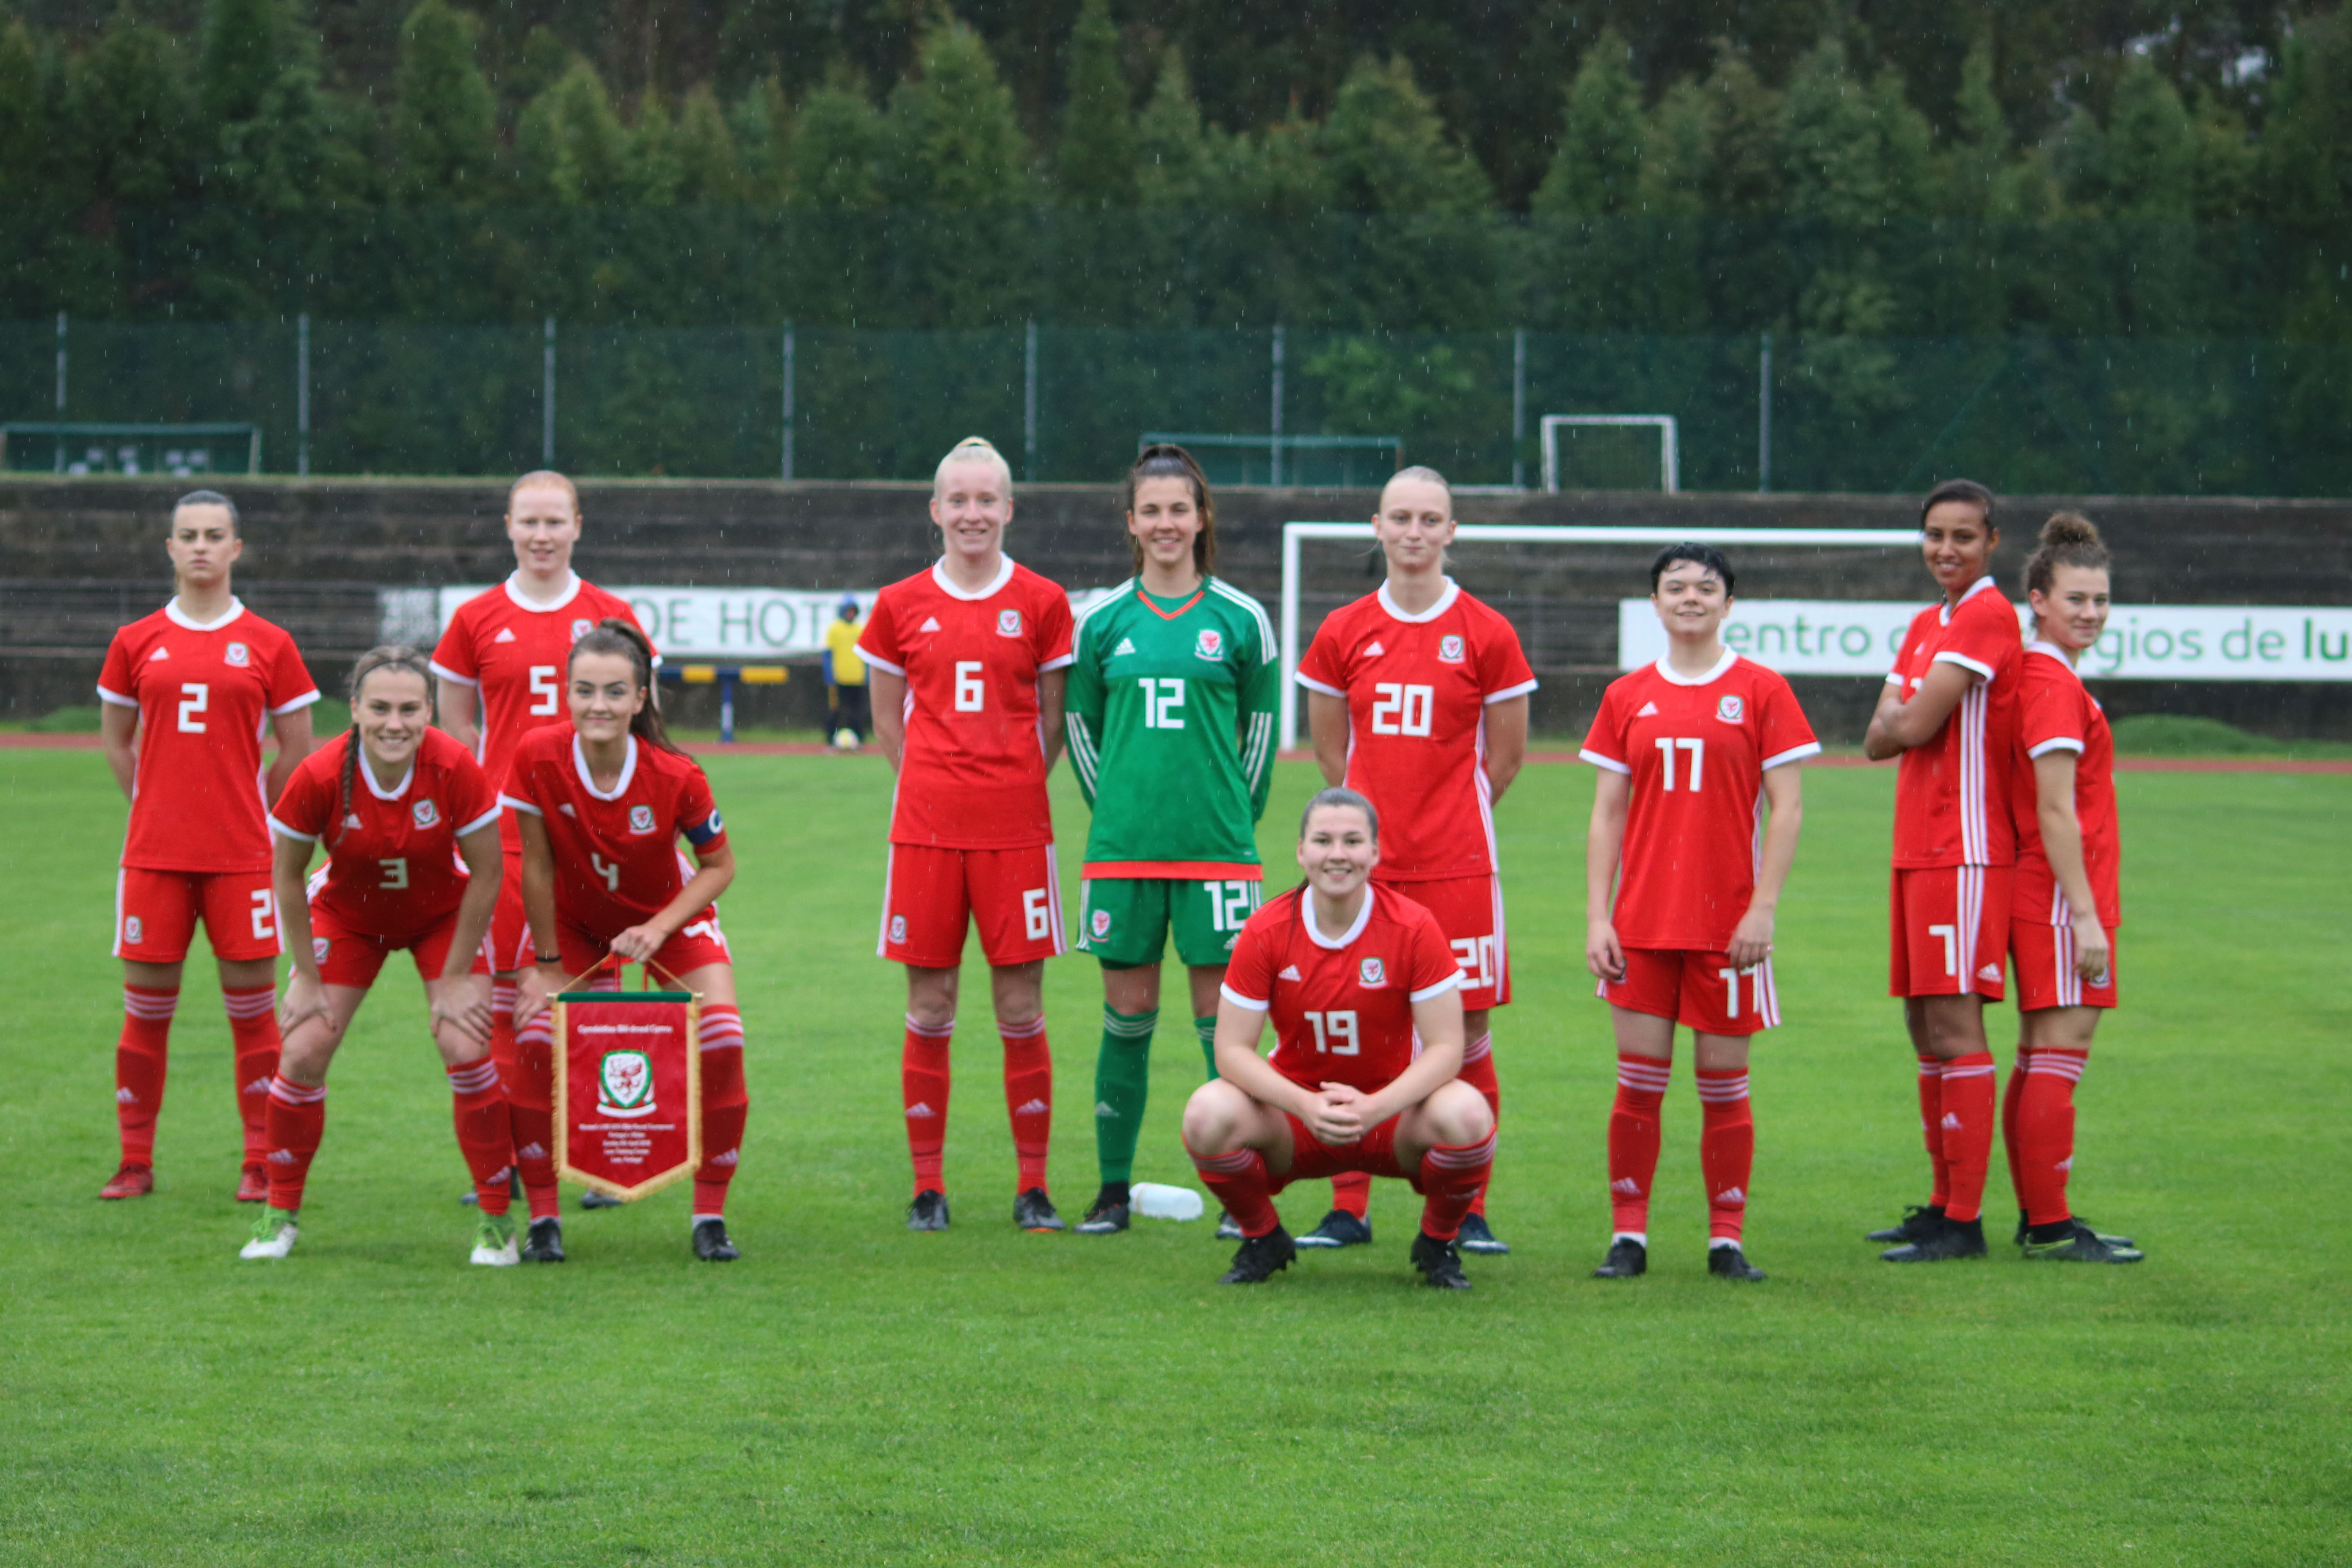 Wales U19 beat hosts Portugal in final Elite Round match